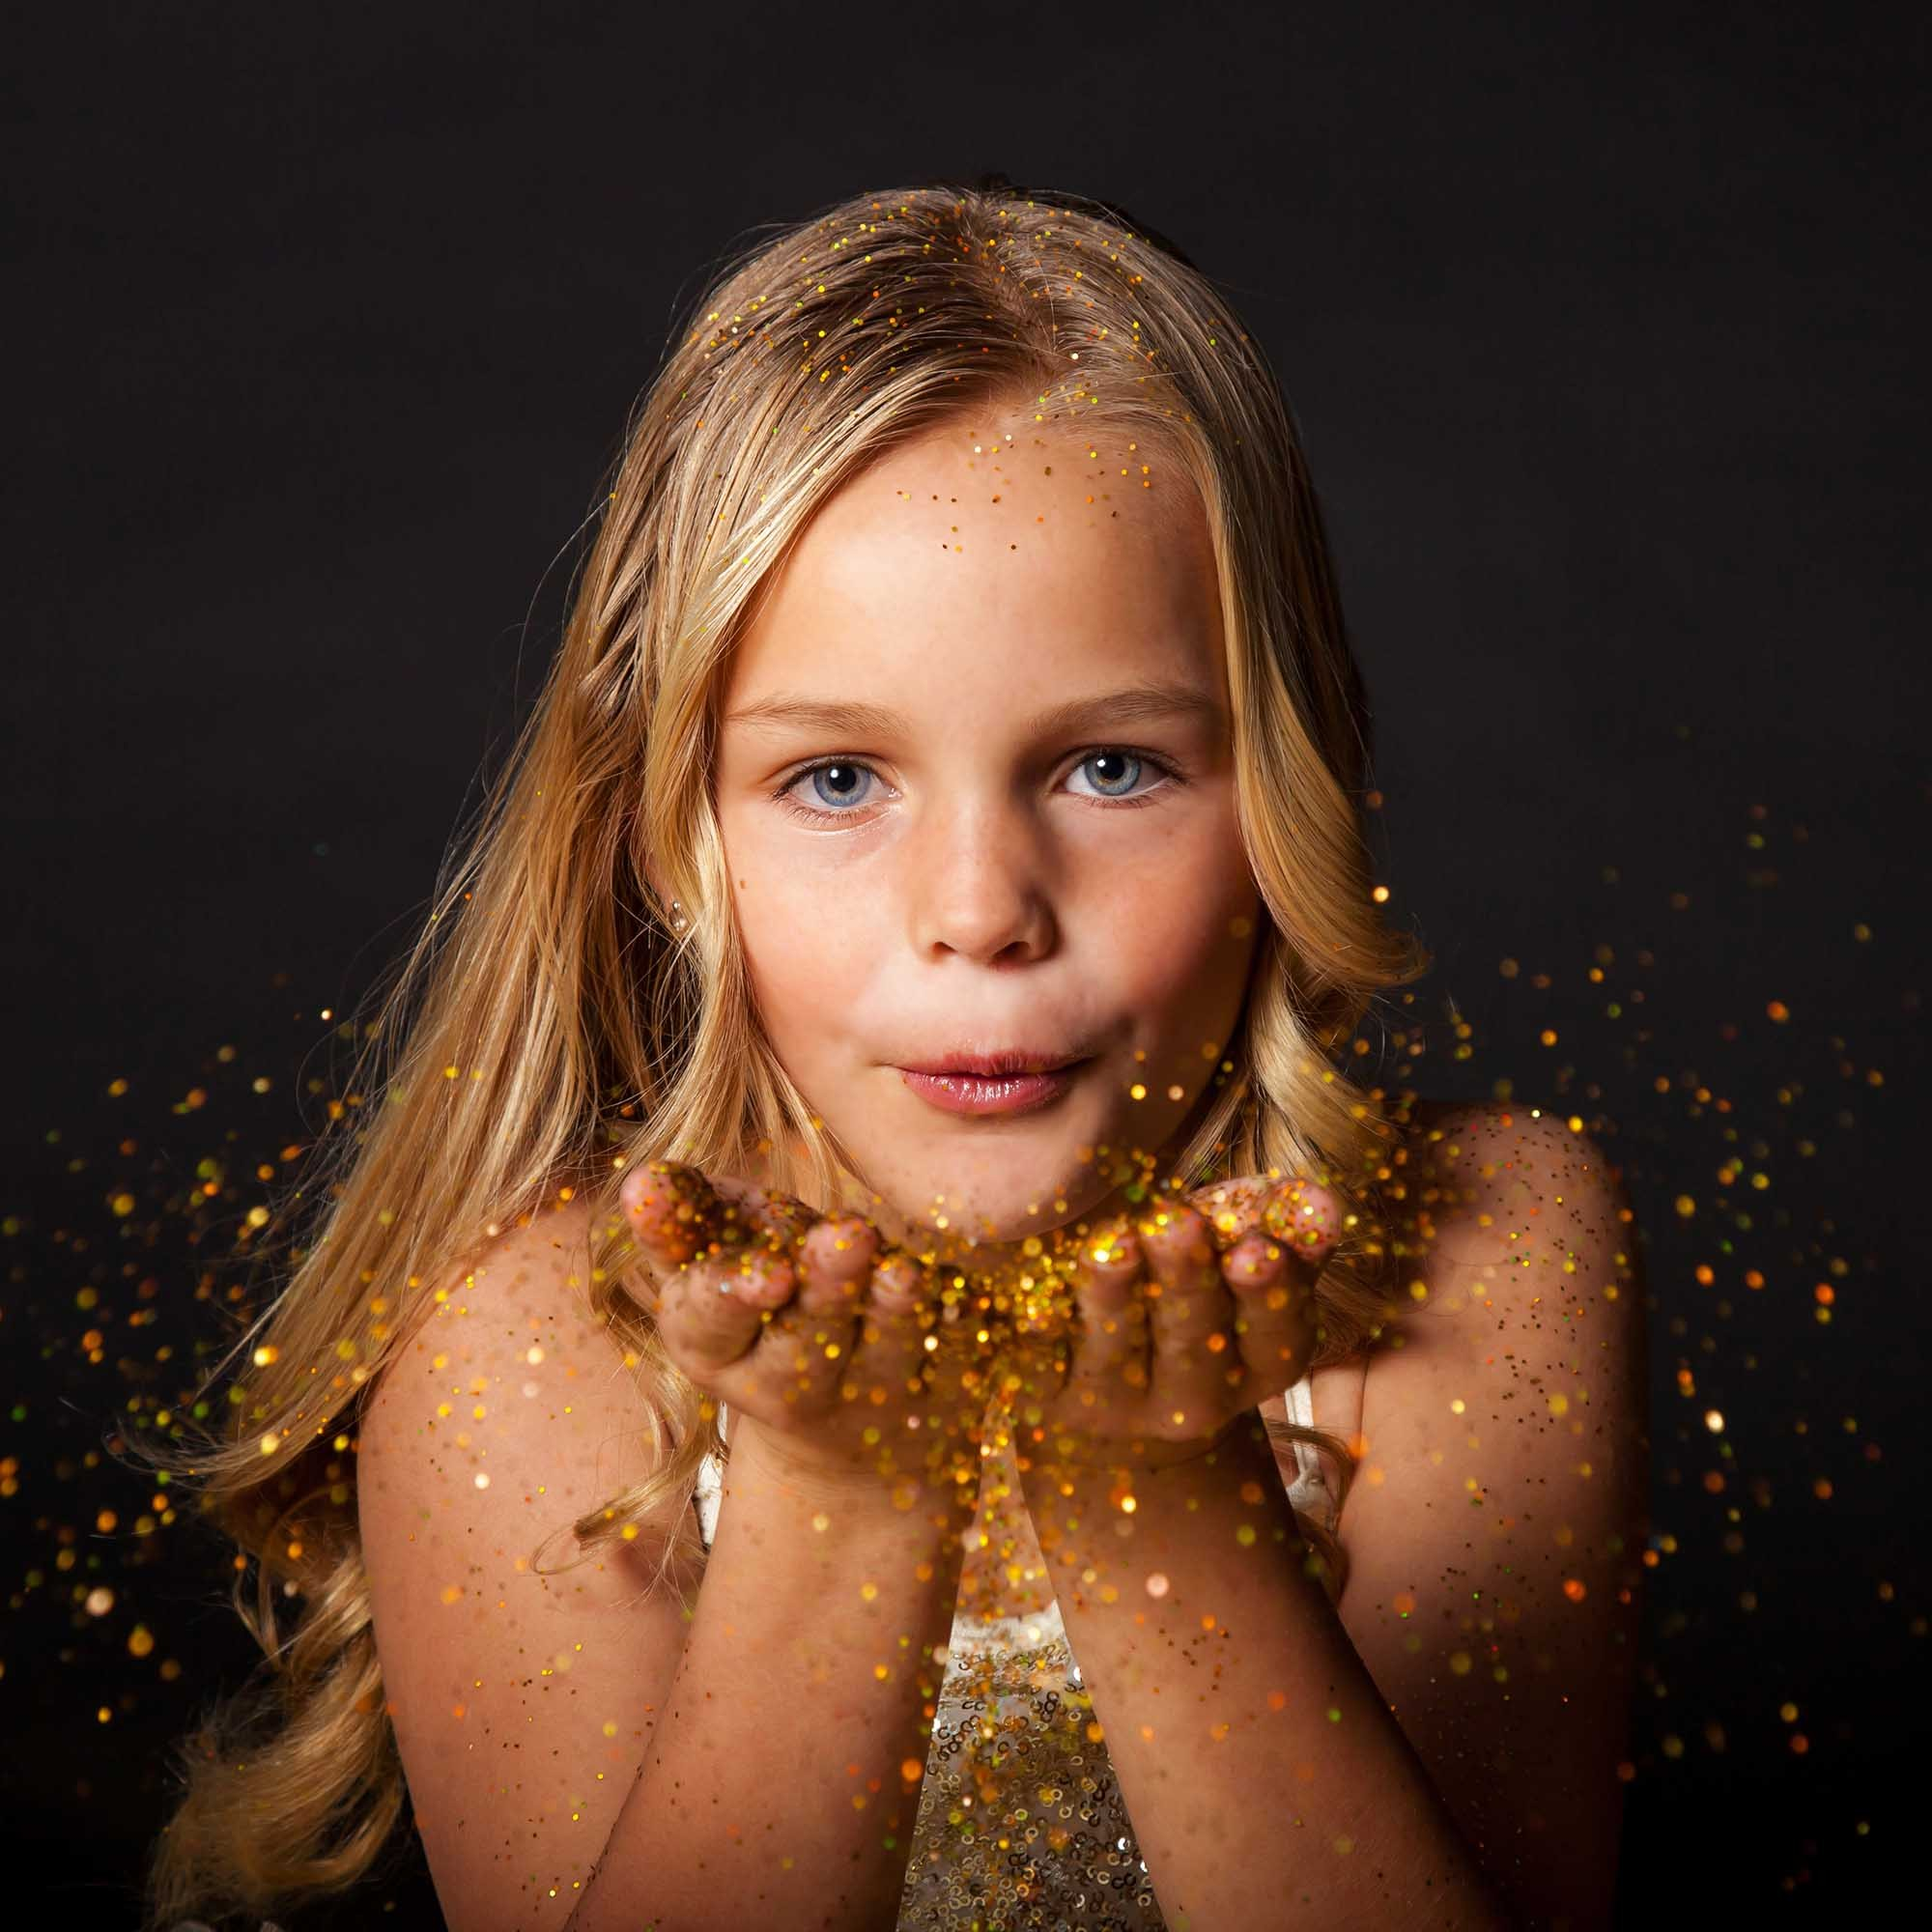 Glitter Session Fine Art Portrait 01 by Eric Pearce Photography